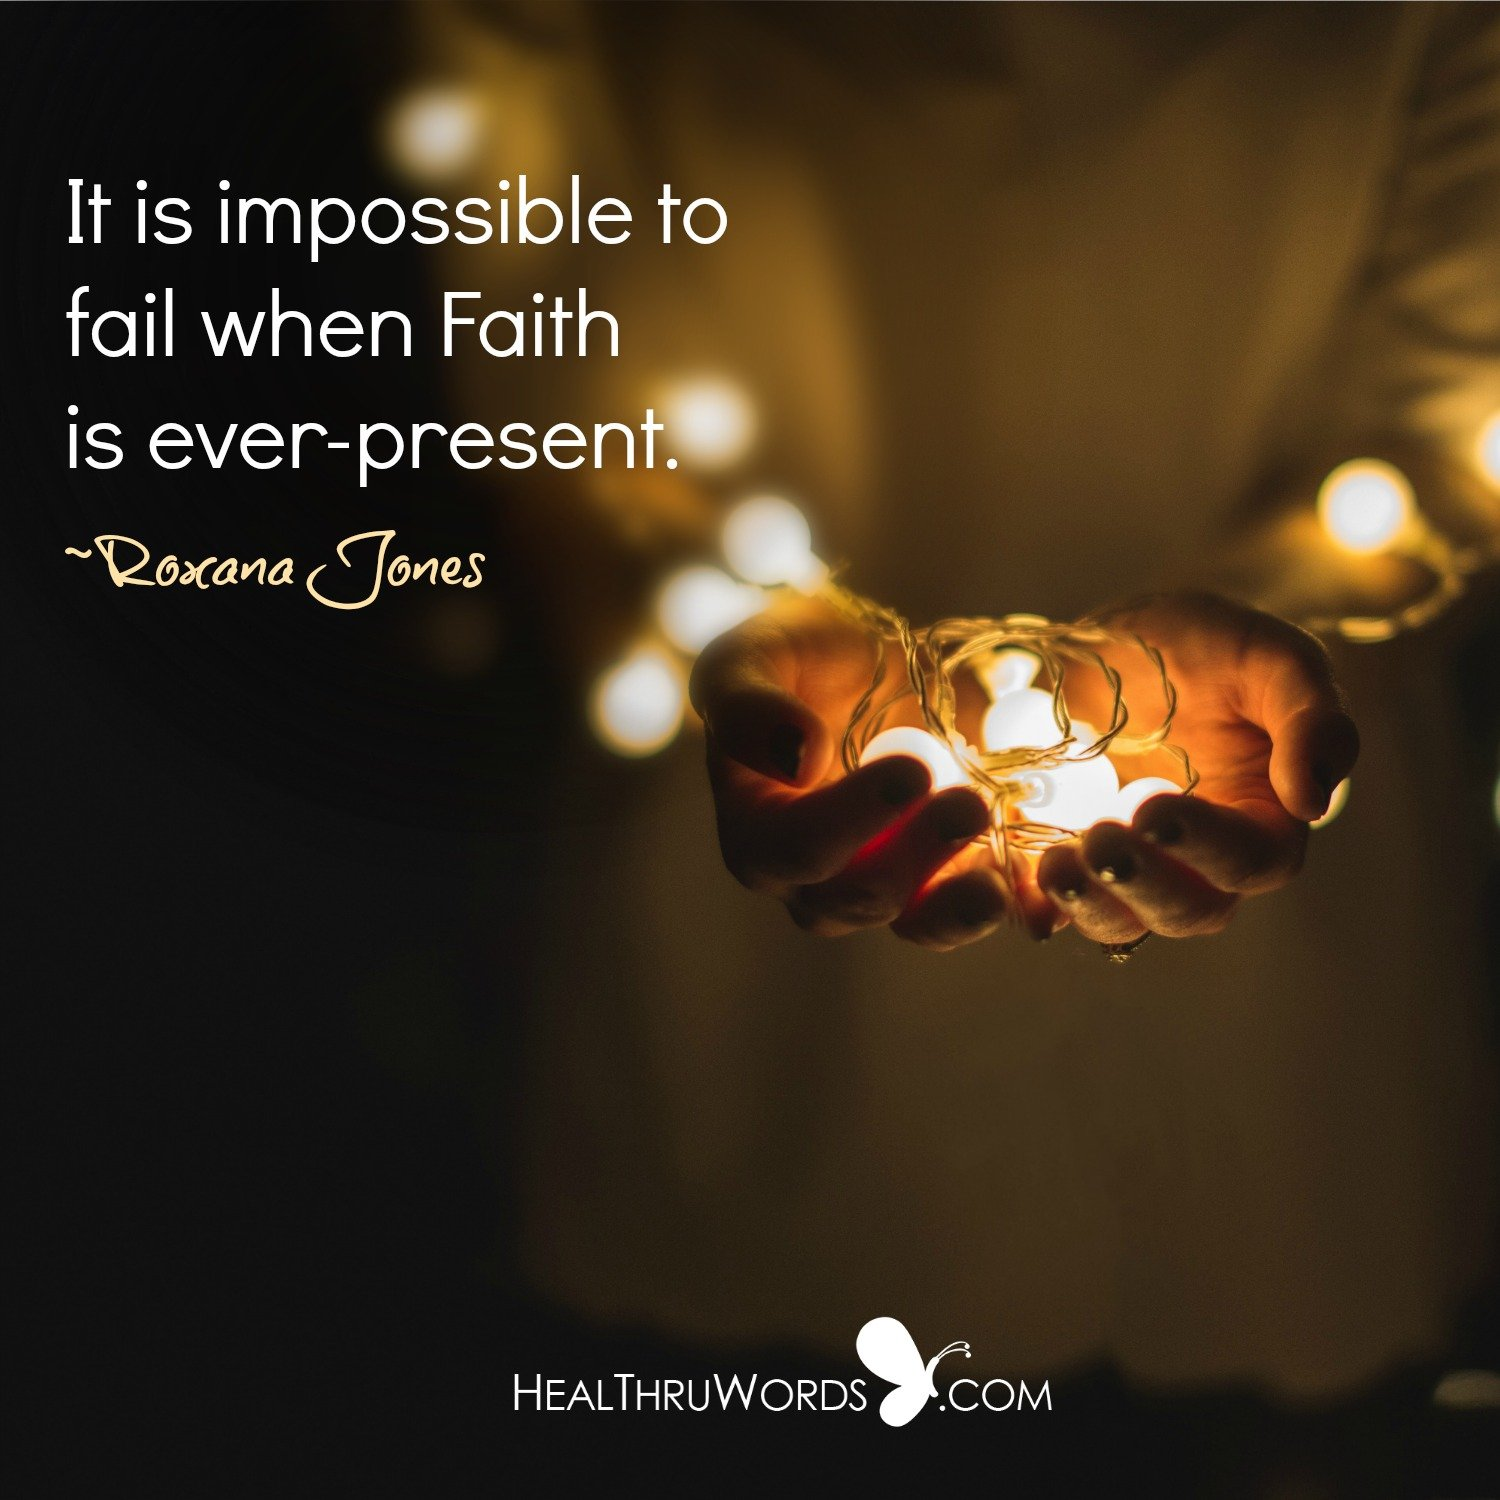 Inspirational Image: The Impossibility of Failure